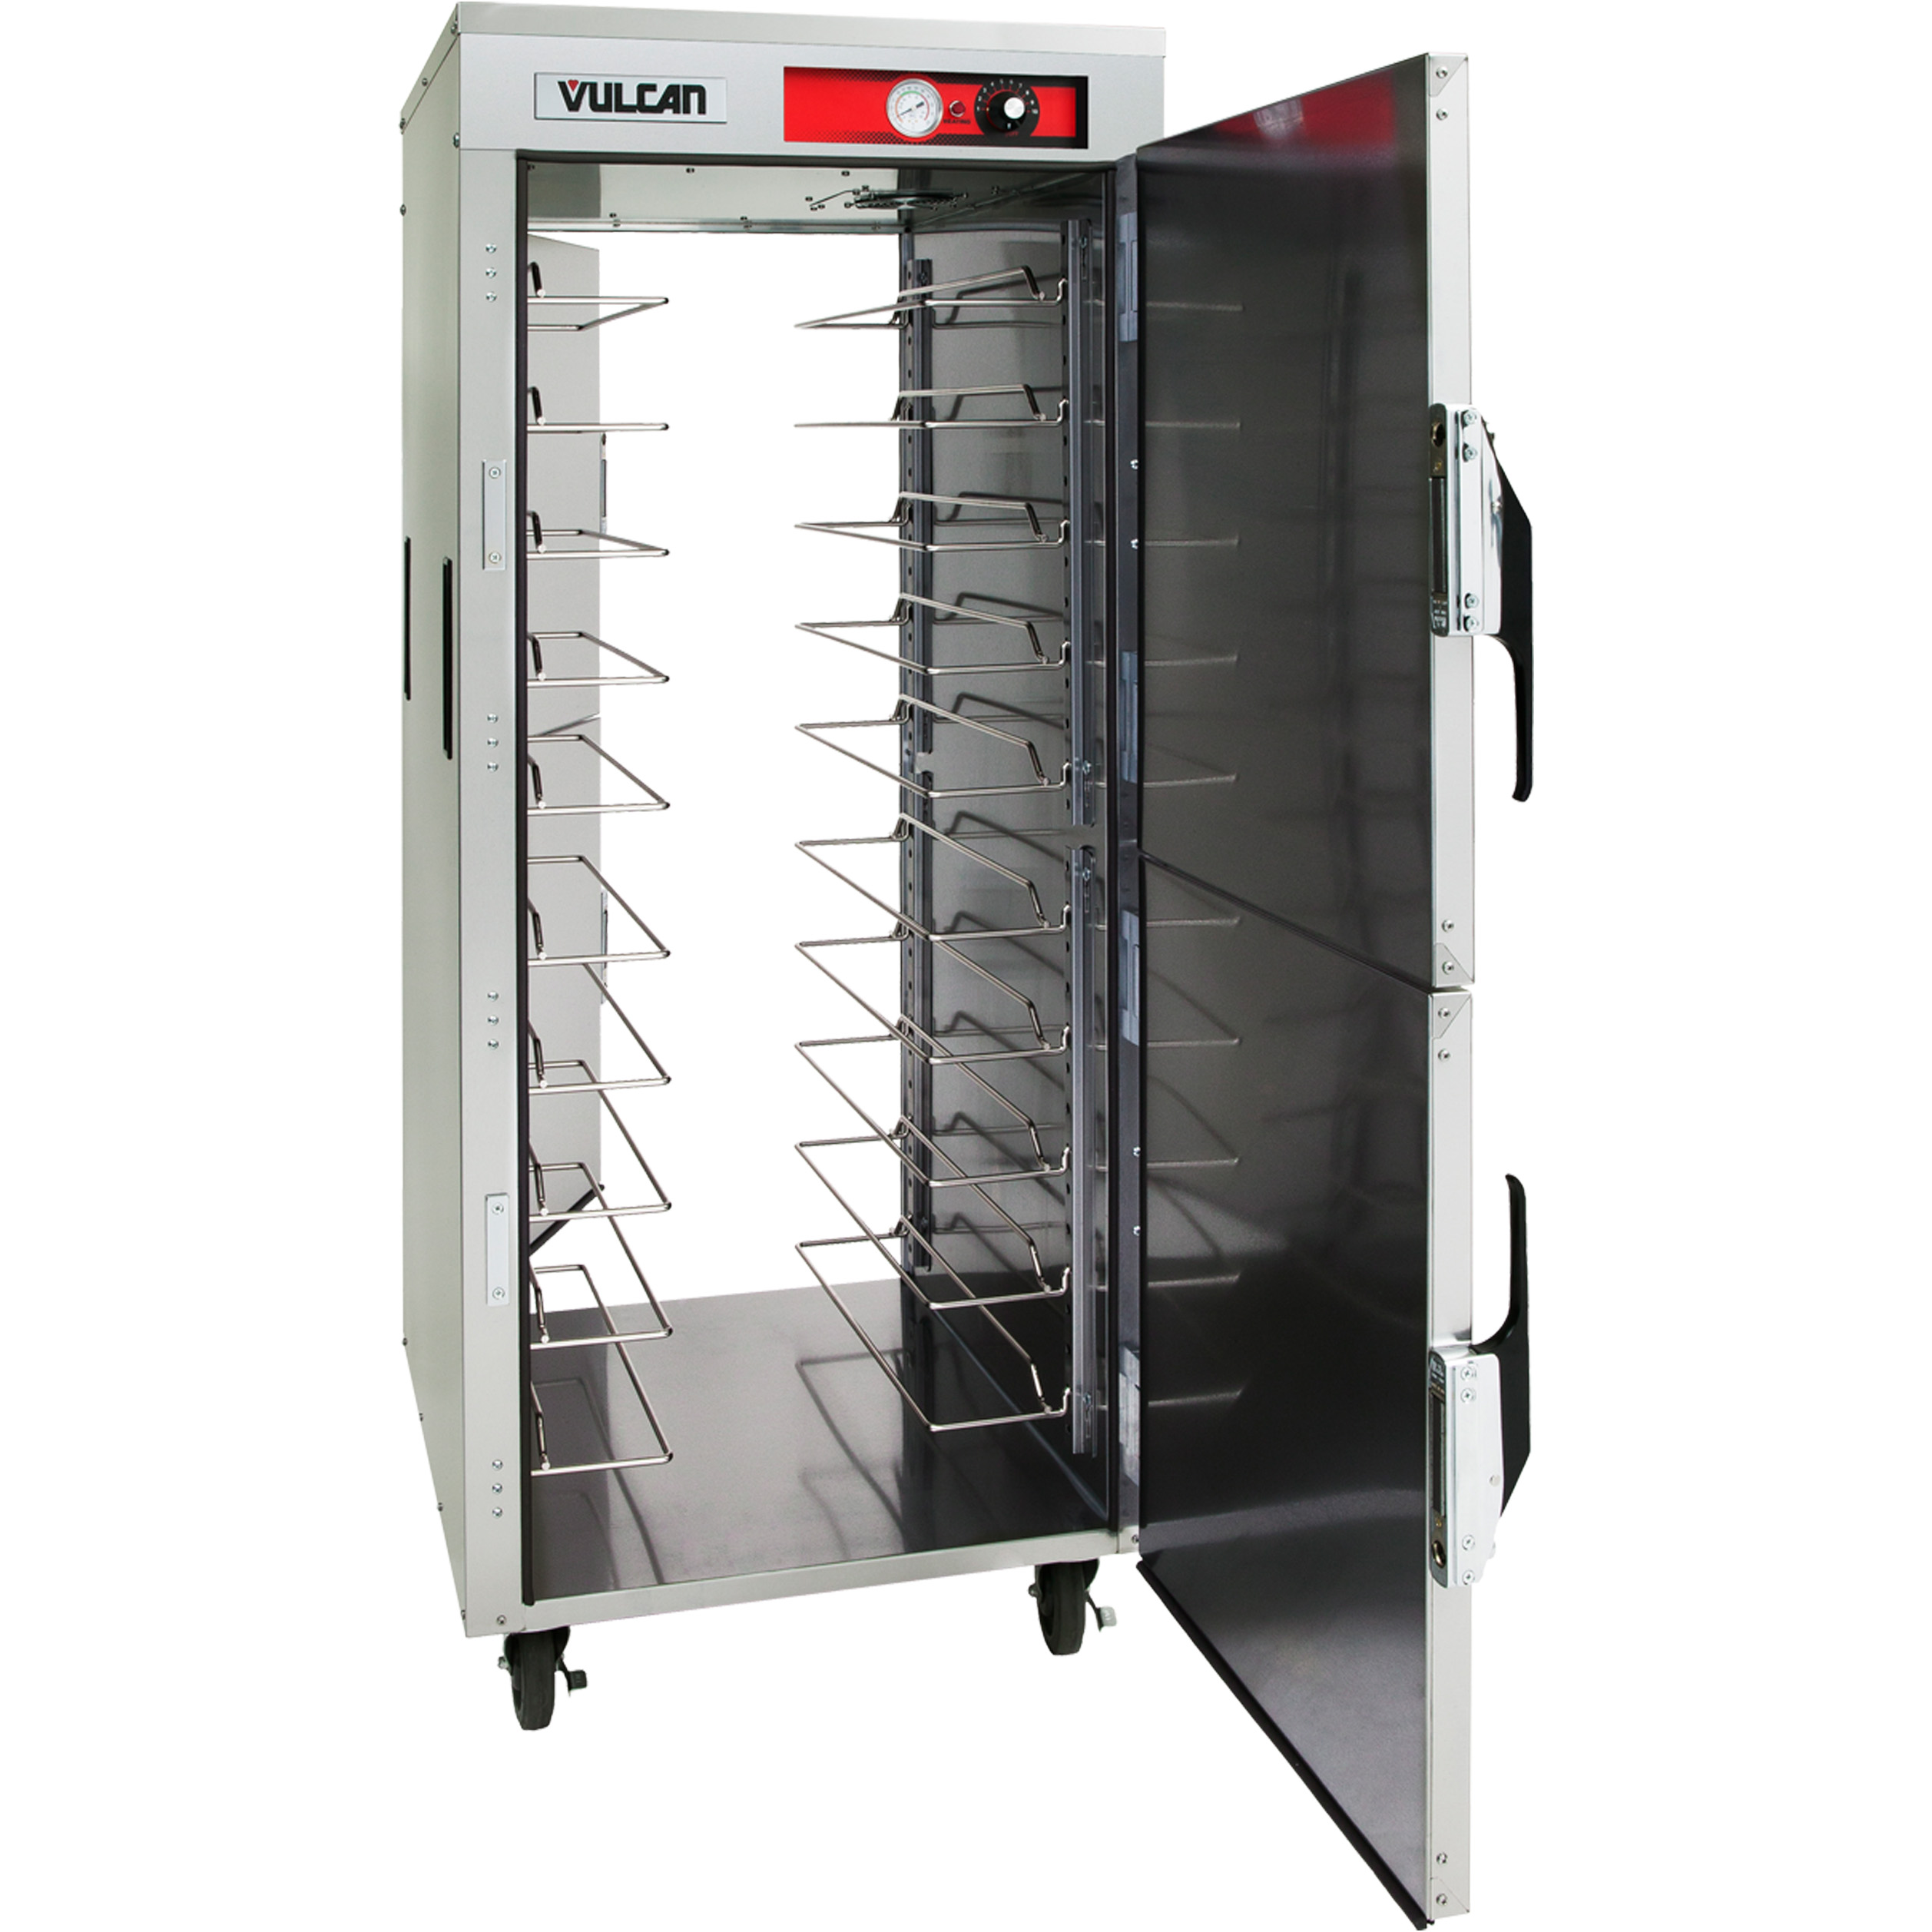 Vulcan VPT7 heated cabinet, mobile, pass-thru